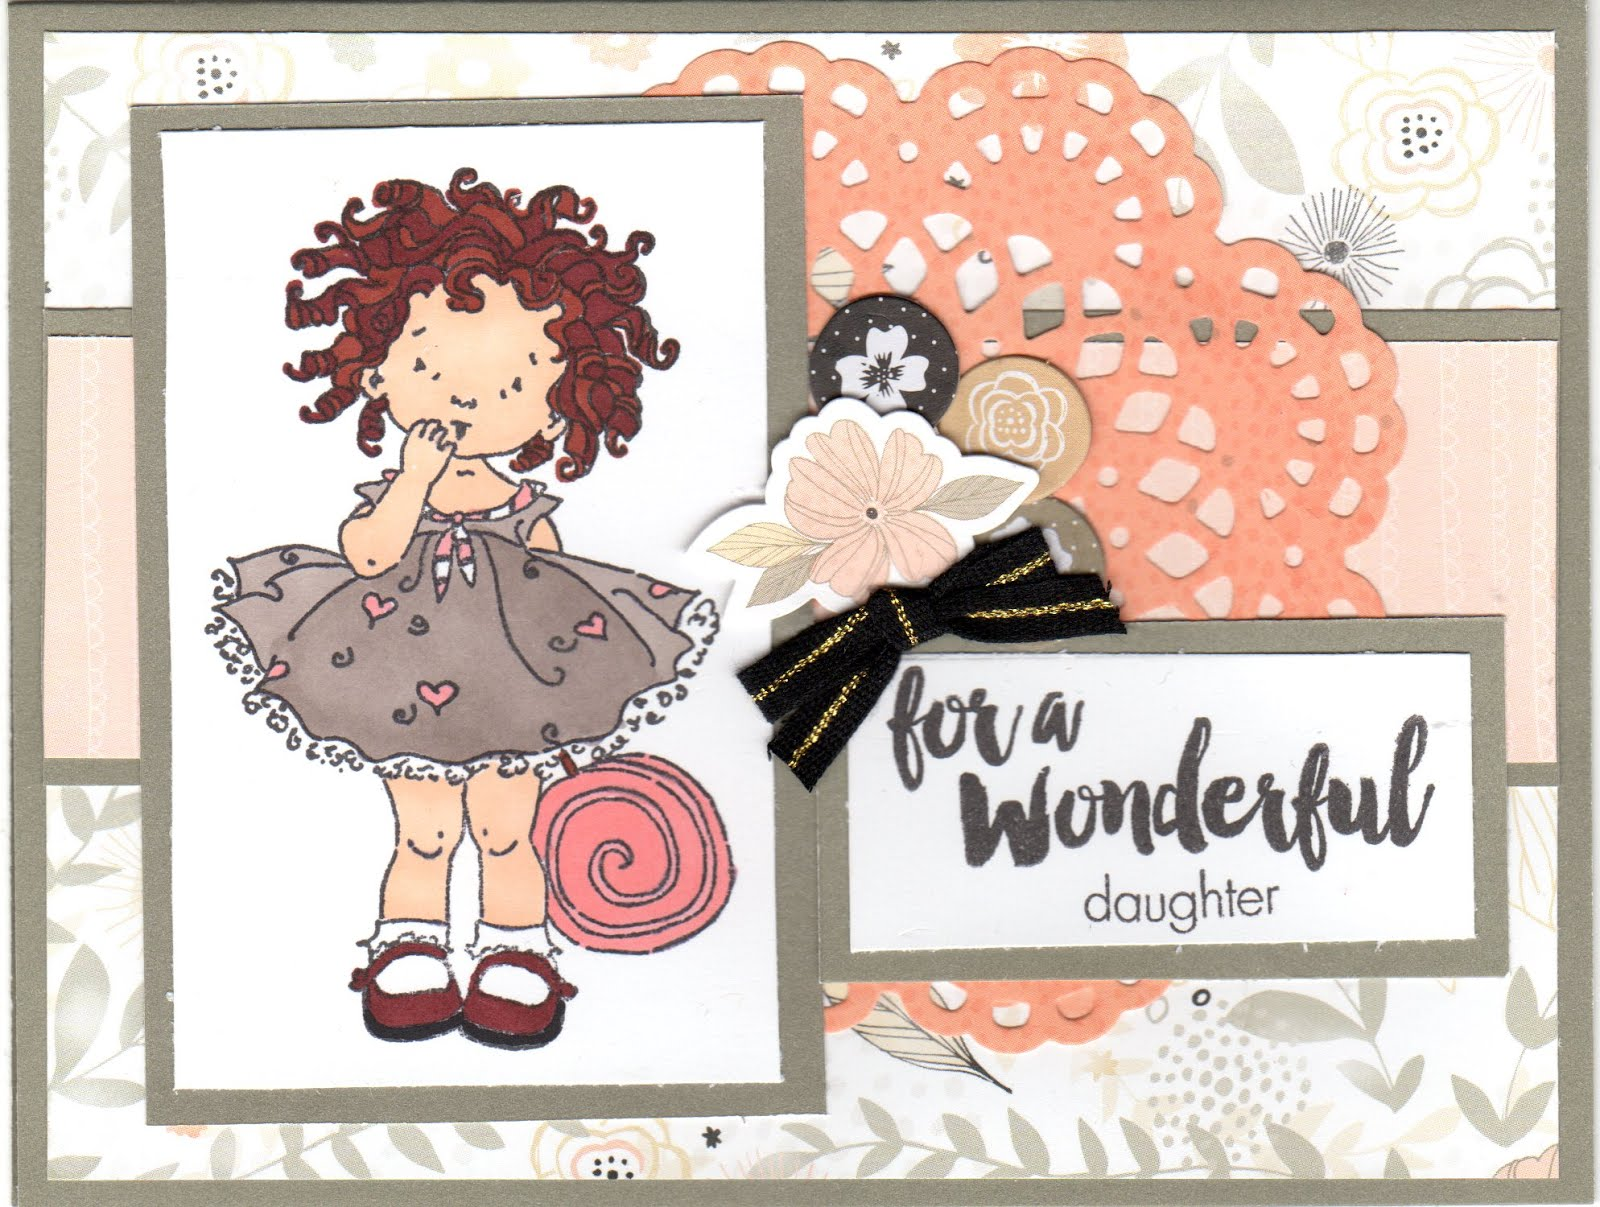 To see all the latest Cards I am working on Visit my other BLOG... Diary of a Scrapbook Addict